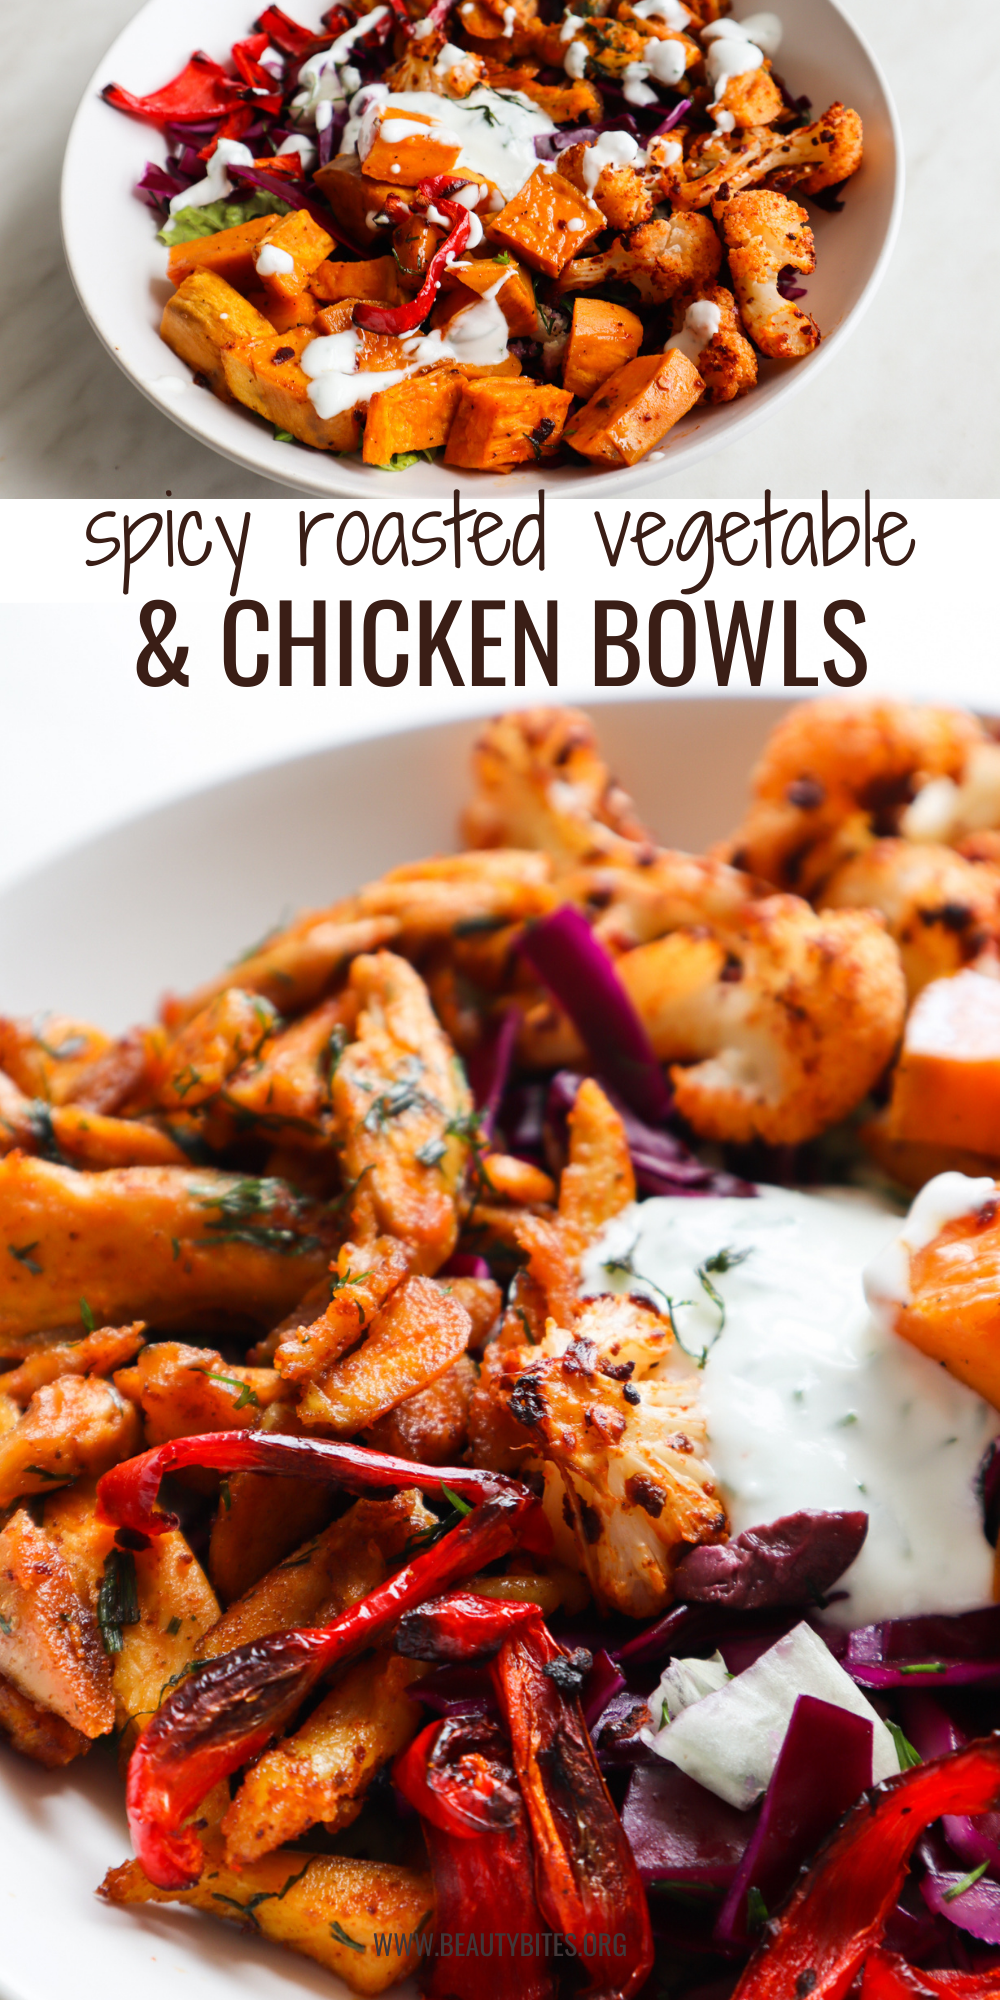 You'll love this delicious healthy dinner idea for healthy spicy chicken and roasted vegetable bowls! These chicken bowls are easy to make and perfect for meal prep and clean eating.